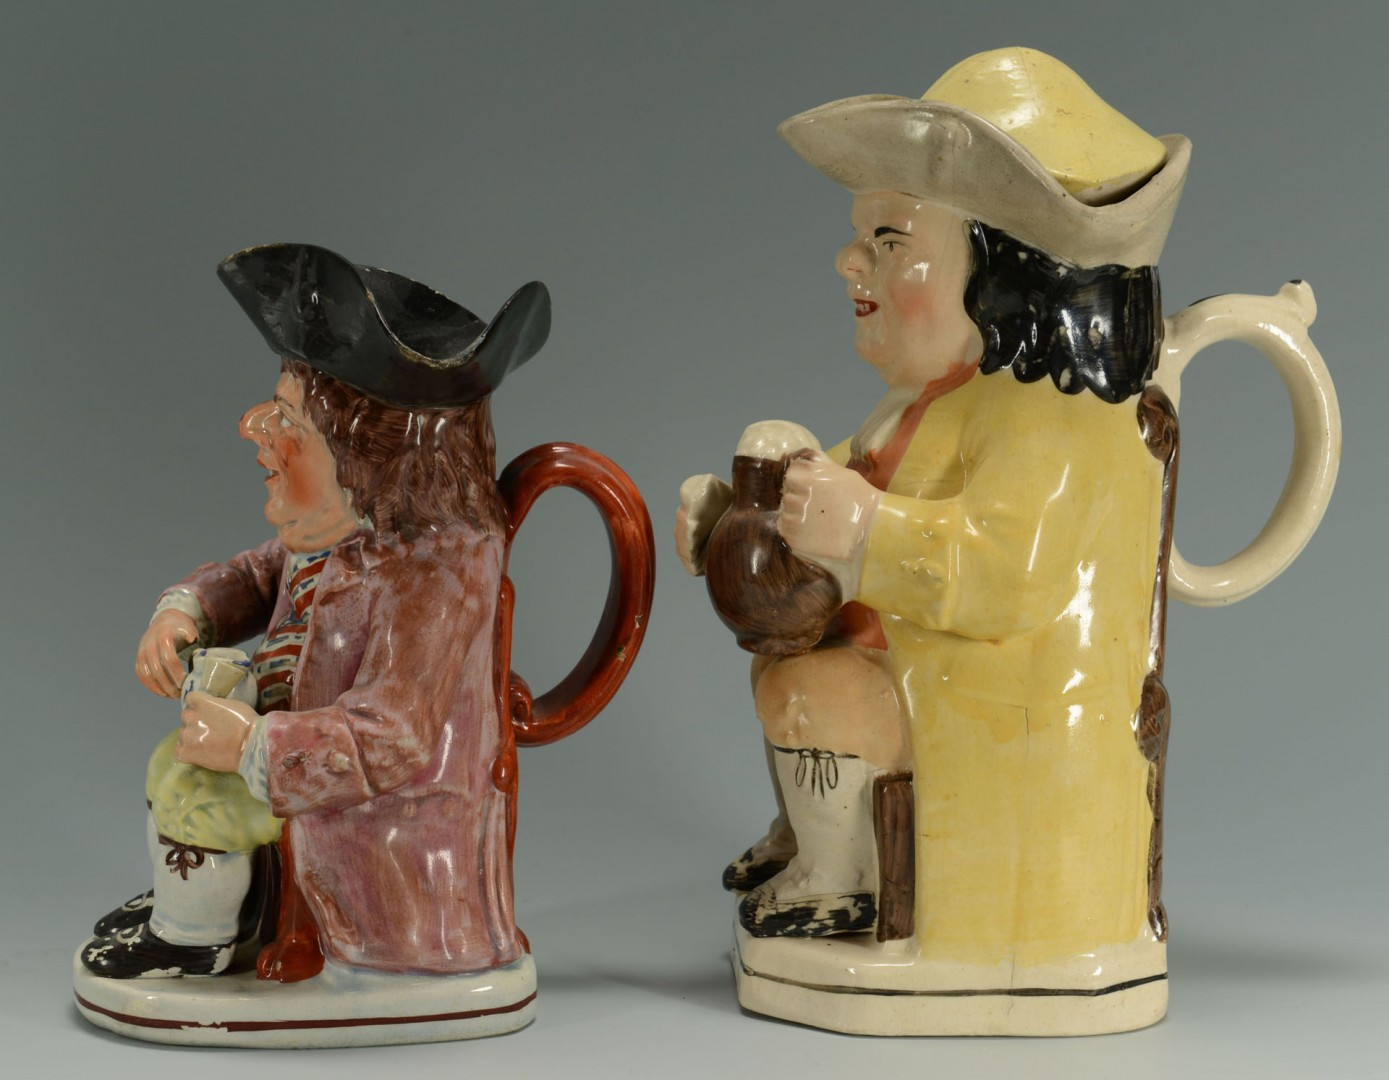 2 Early Toby Jugs including The Sinner